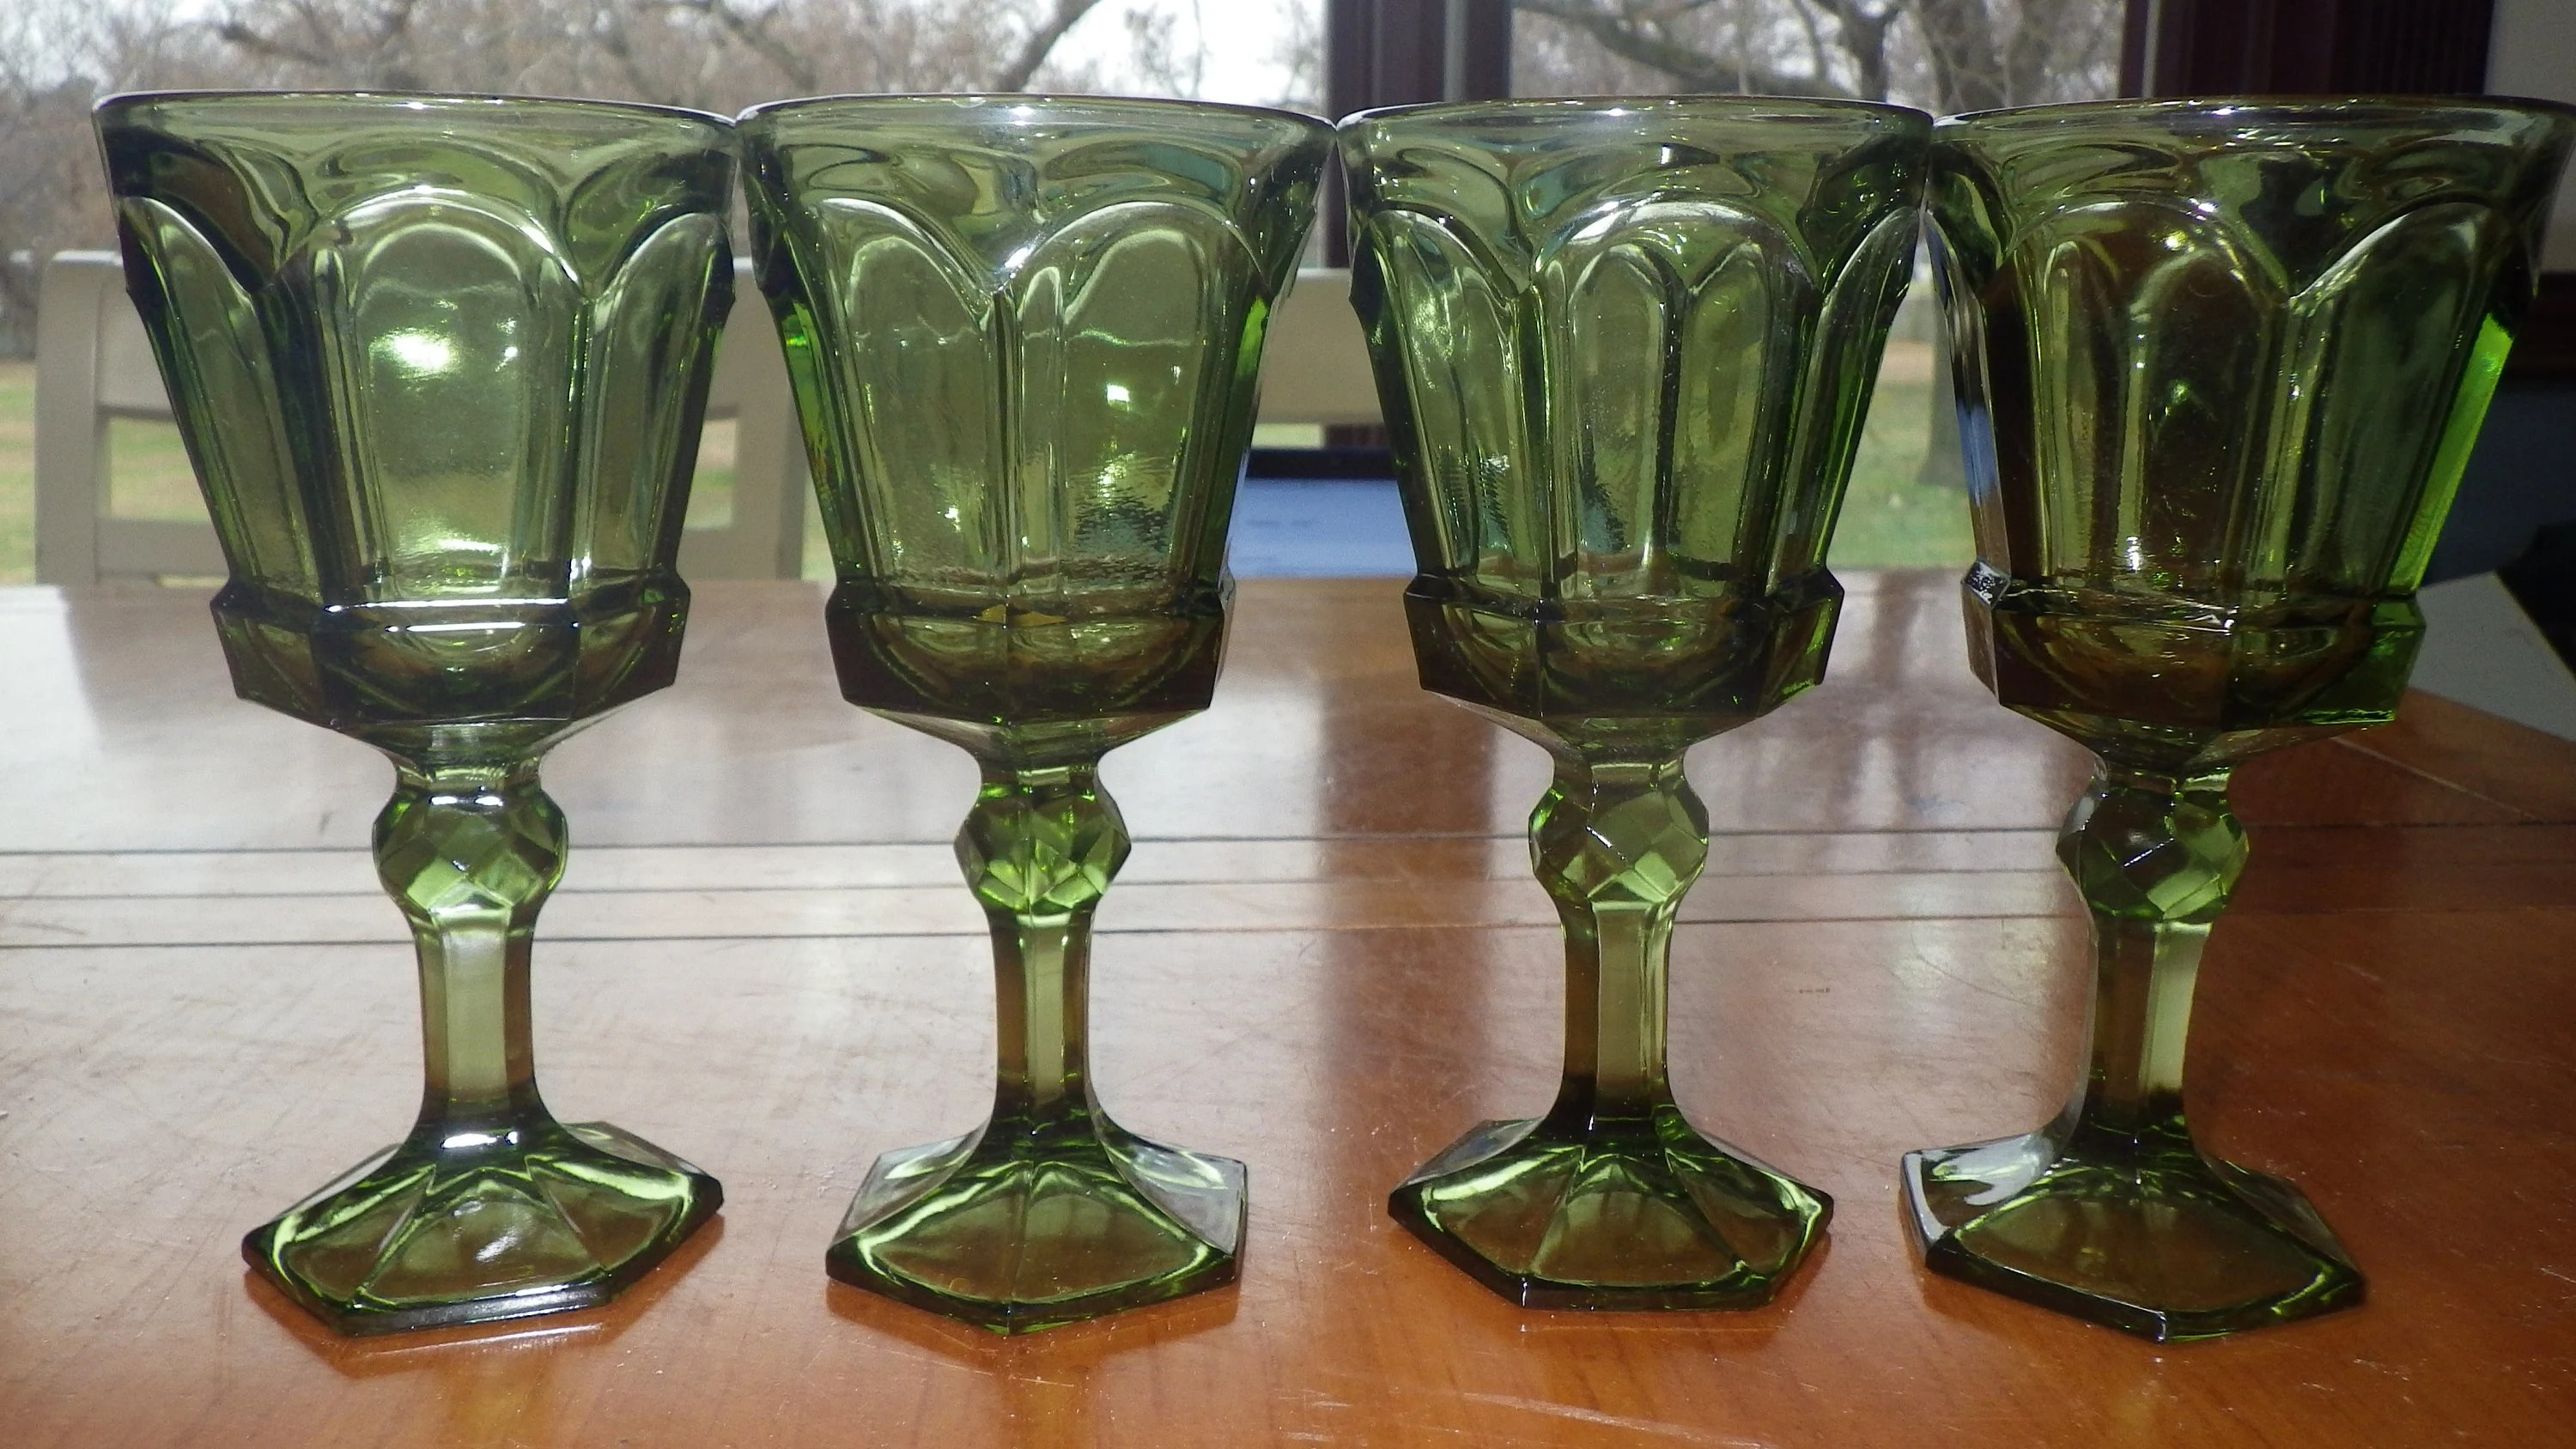 Flat Bottom Stem Wine Glasses Green Claret Wine Glasses By Fostoria Colonial Panel Faceted Ball Stem 5 Oz